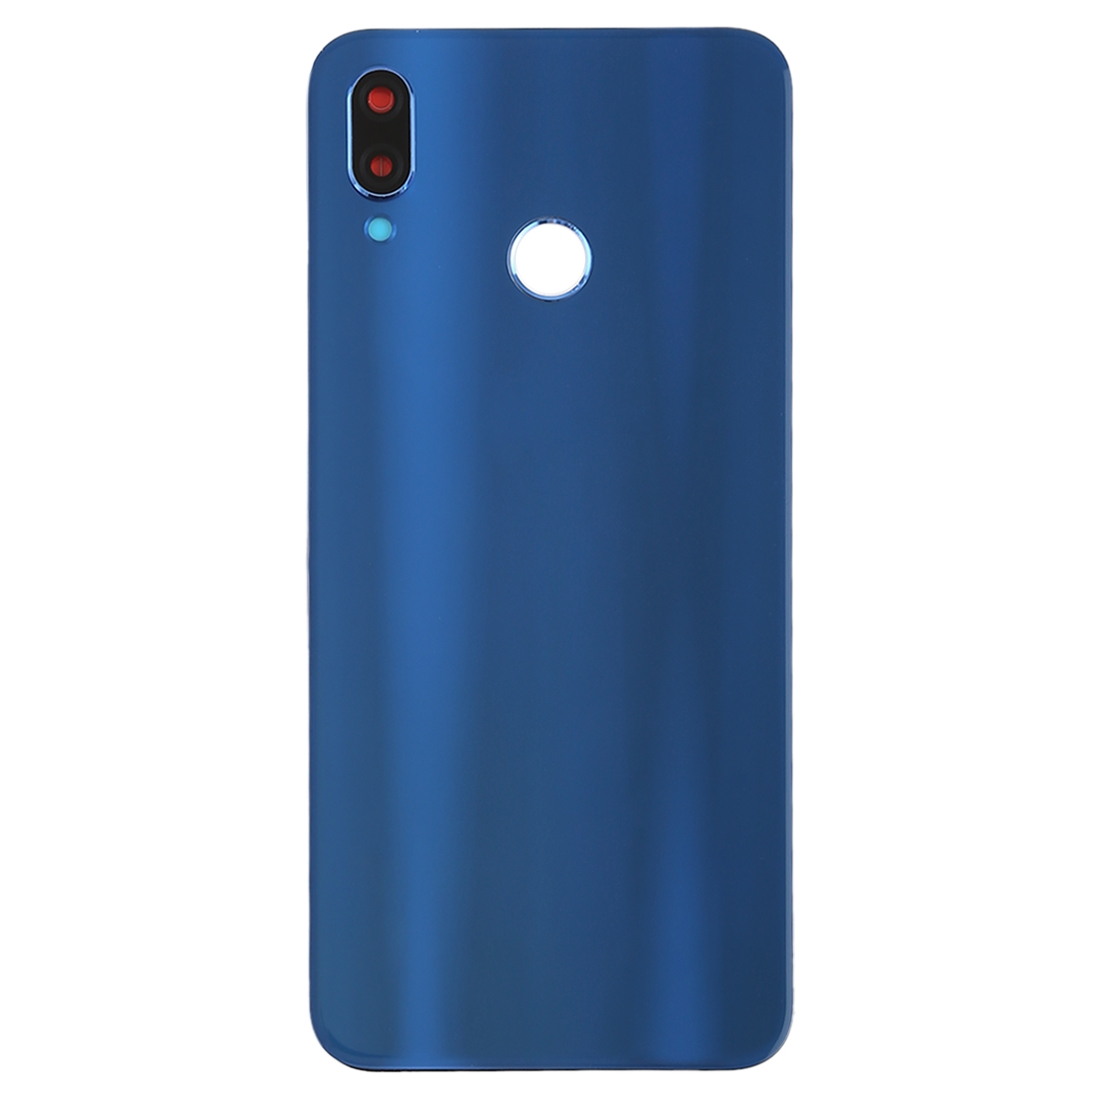 l'ultimo a69b5 5ecb4 Back Cover with Camera Lens (Original) for Huawei P20 Lite / Nova 3e  (Twilight)